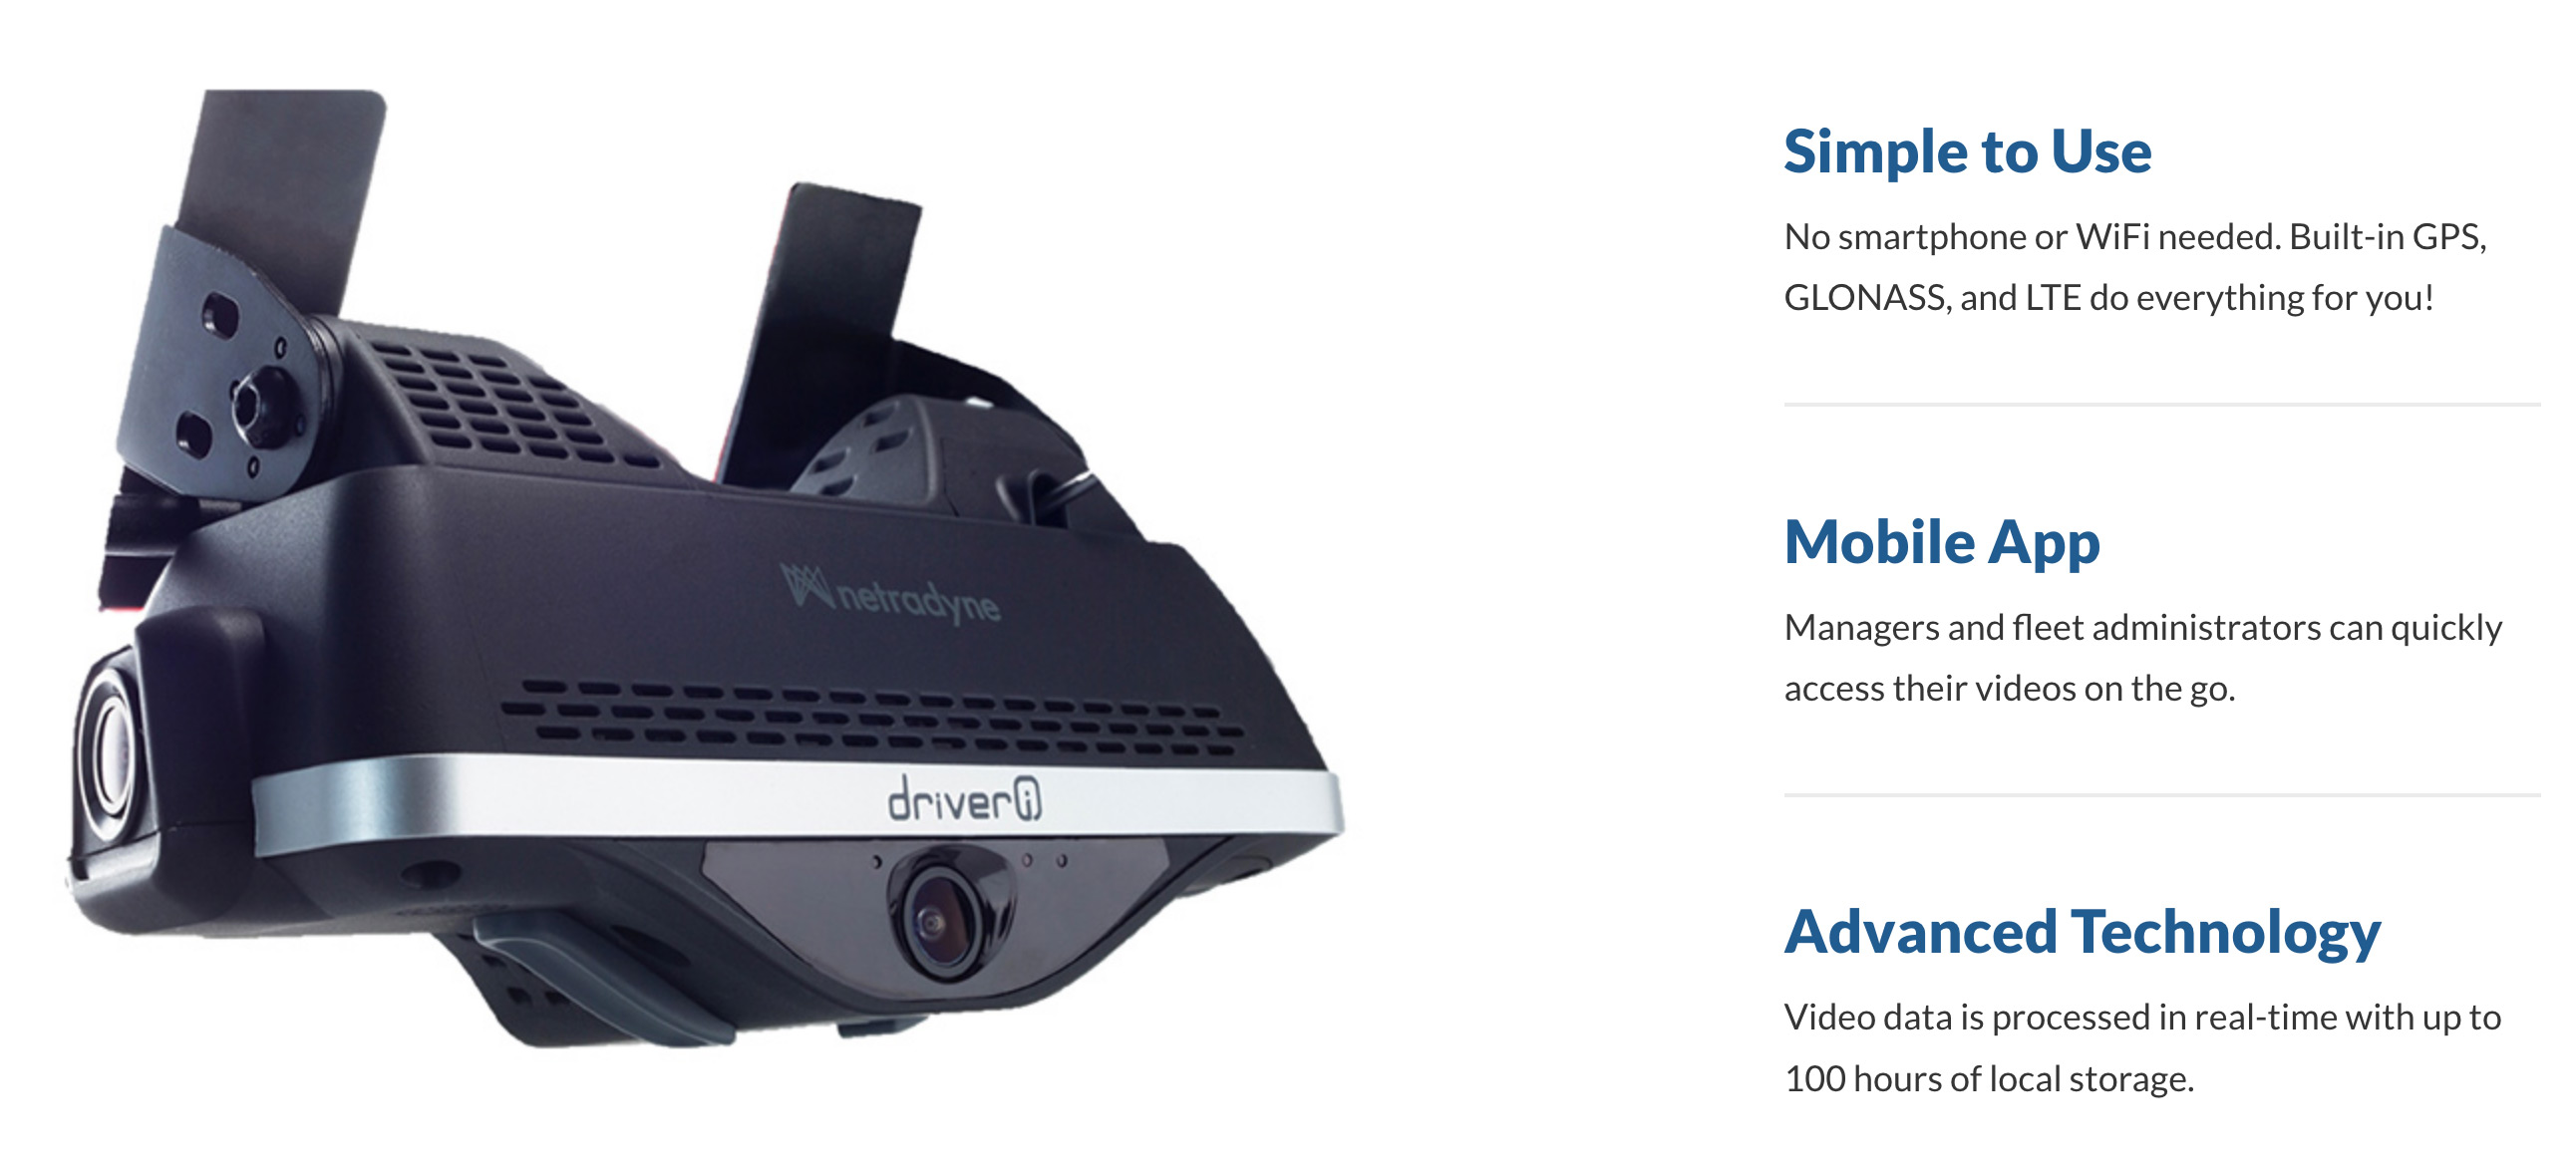 Driveri Product Description